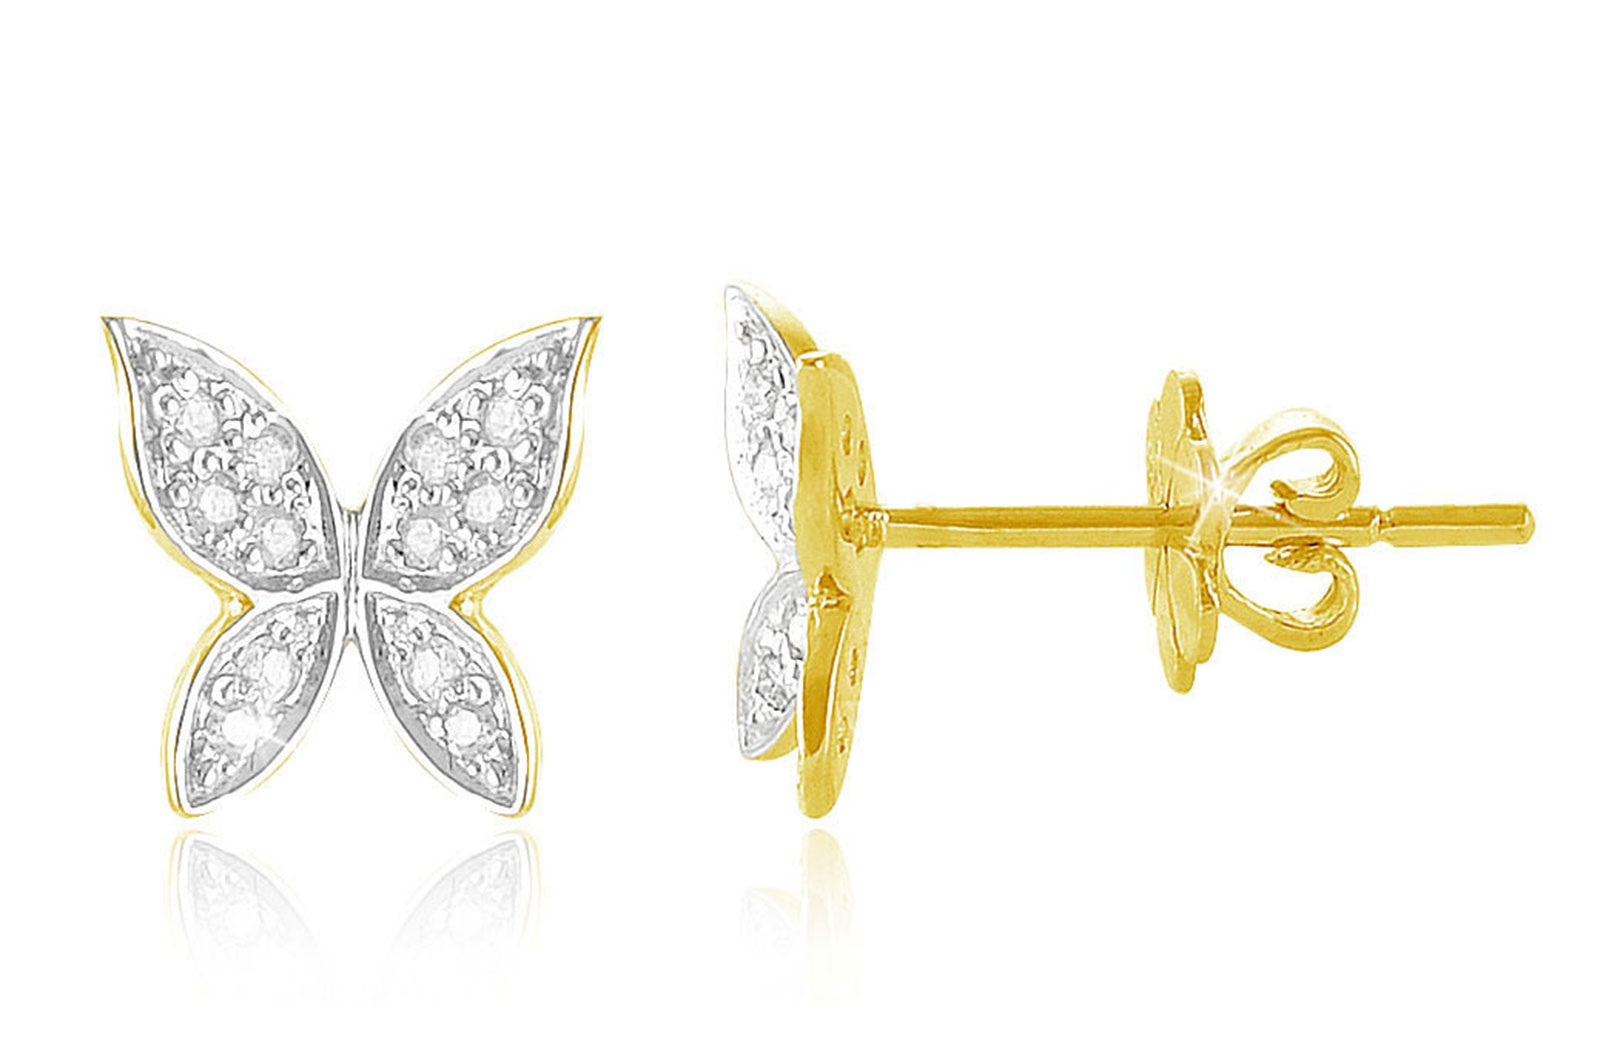 Vera Perla 0.12Cts Diamonds, 18K Yellow Gold Butterfly Earrings